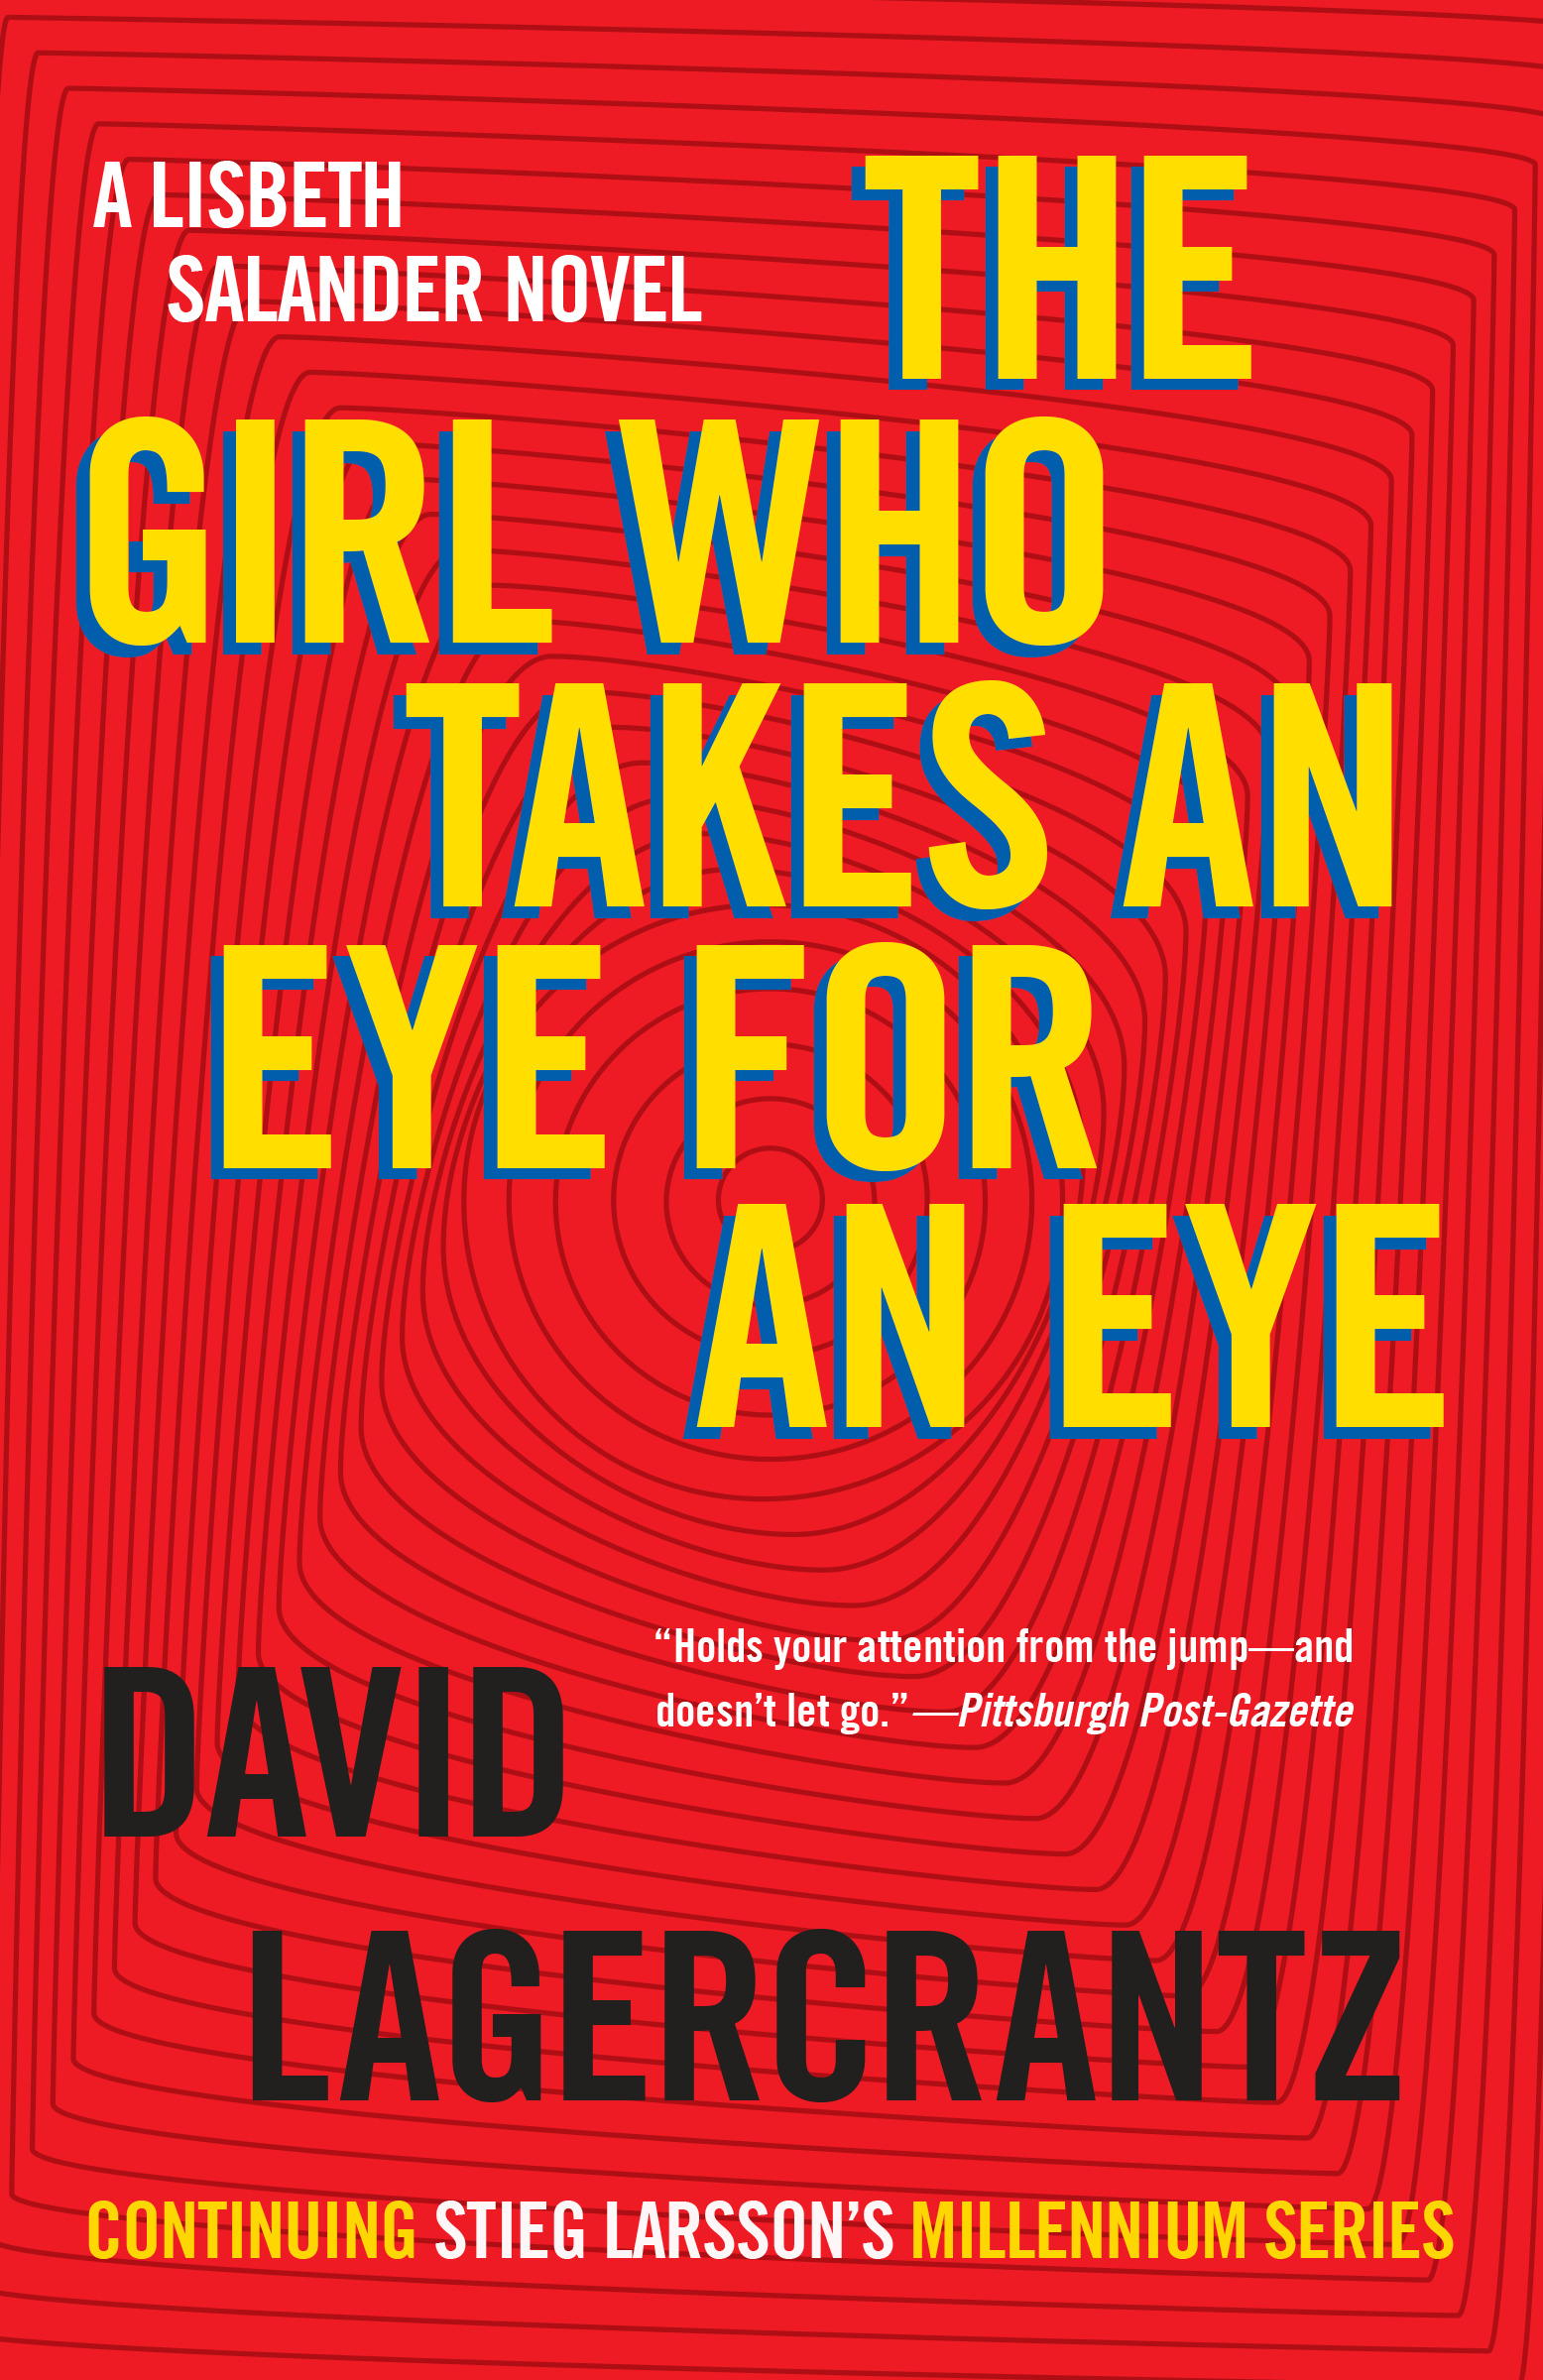 The Girl Who Takes an Eye for an Eye : A Lisbeth Salander novel, continuing Stieg Larsson's Millennium Series | Thriller